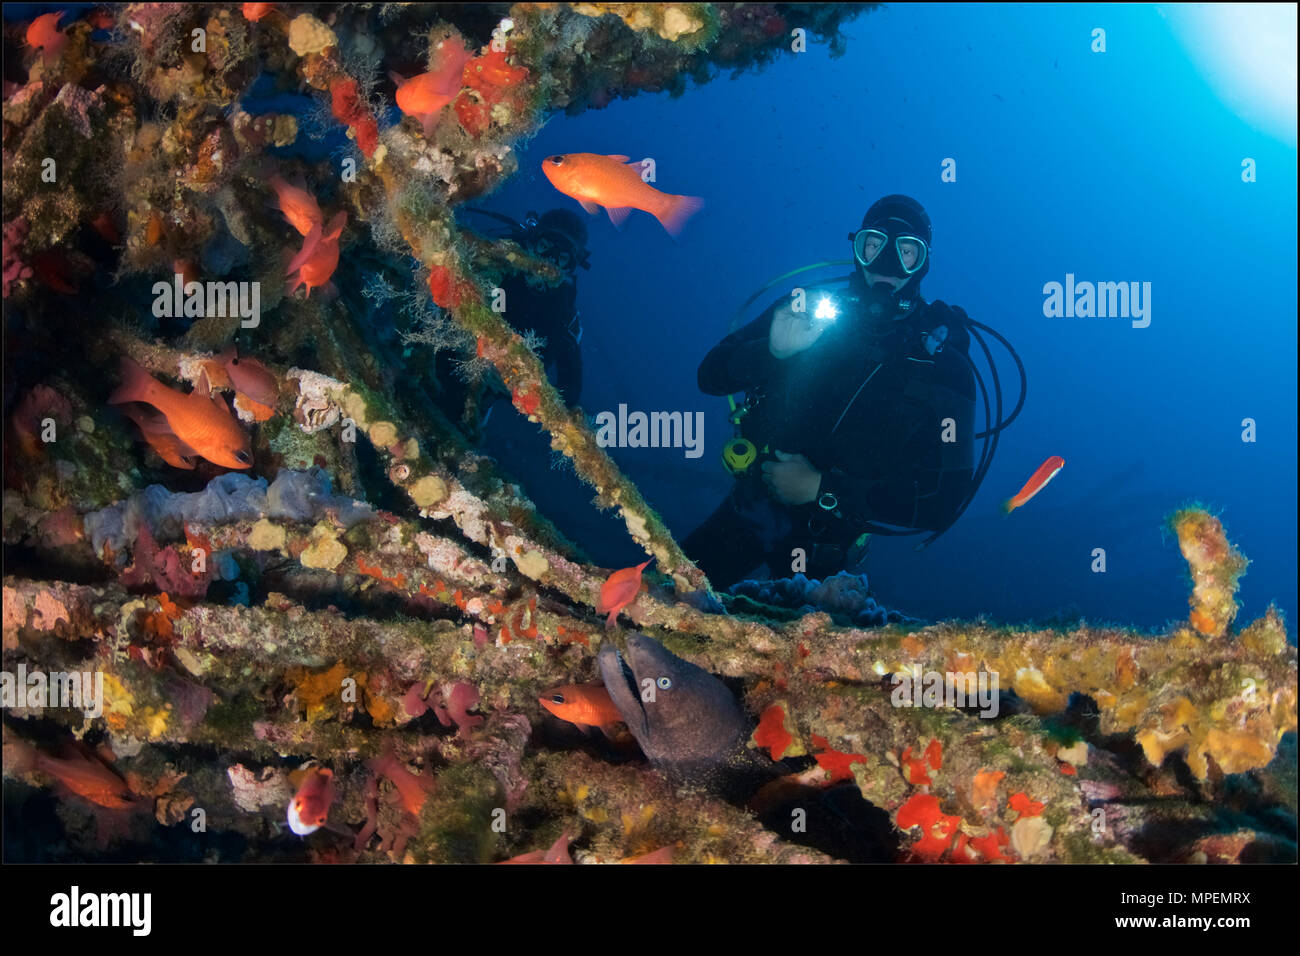 scubadiver-with-torch-a-cardinalfishapog